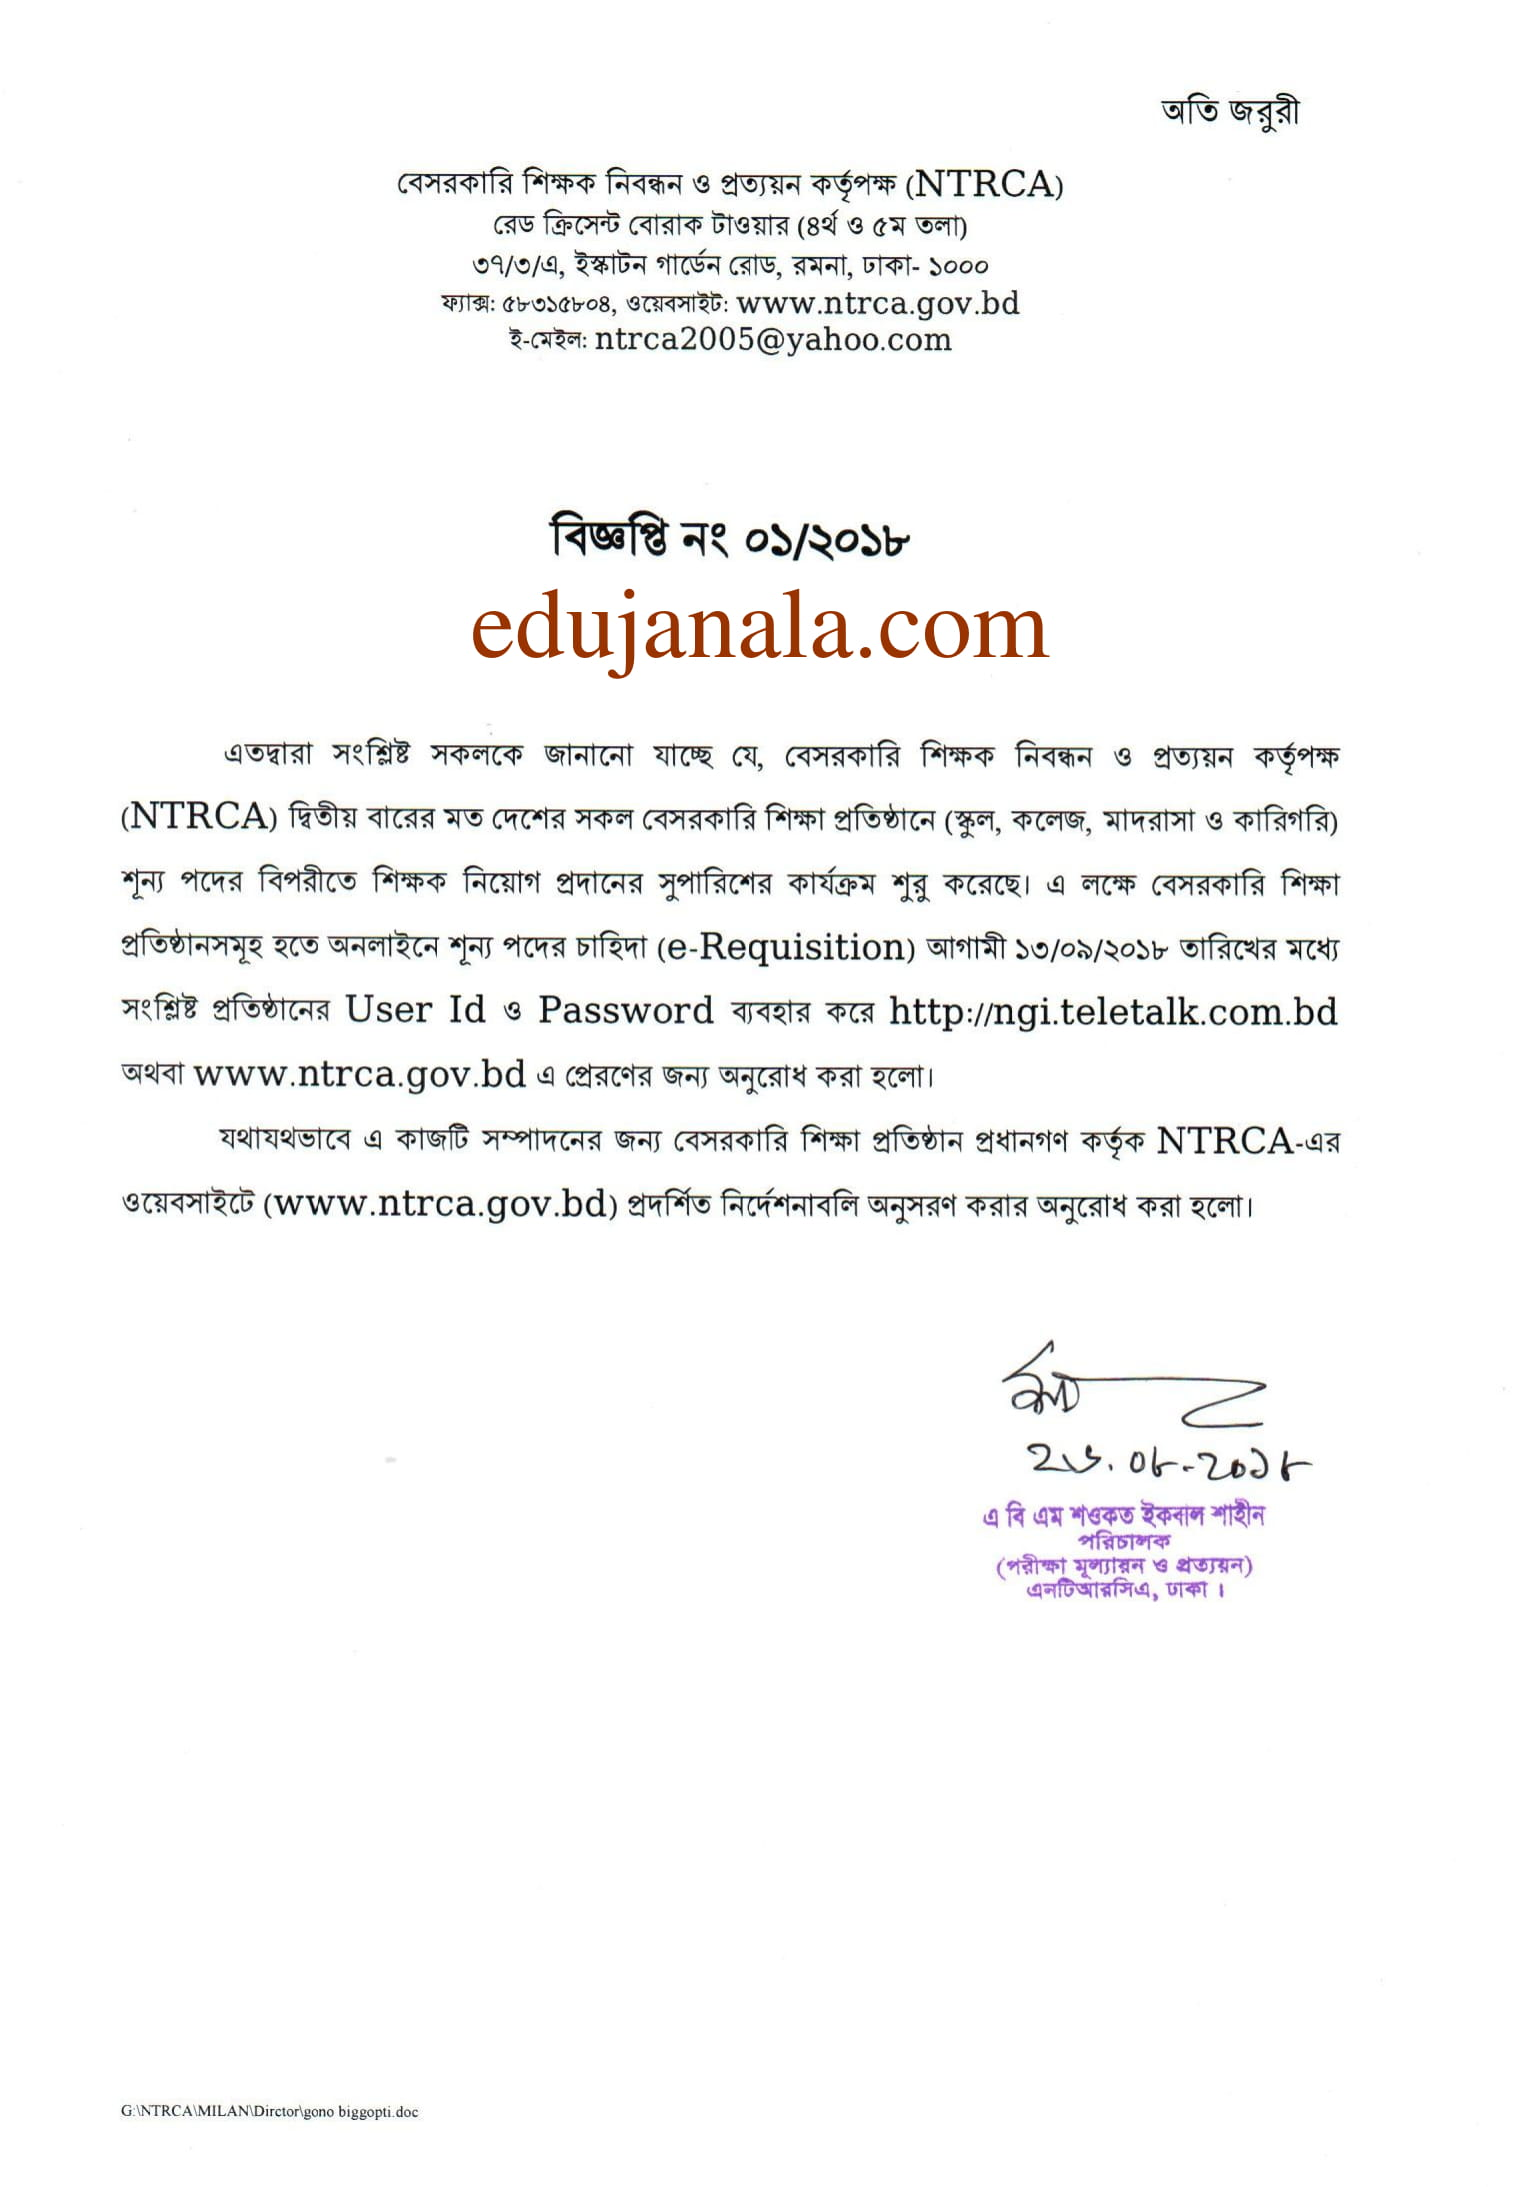 NTRCA requisition